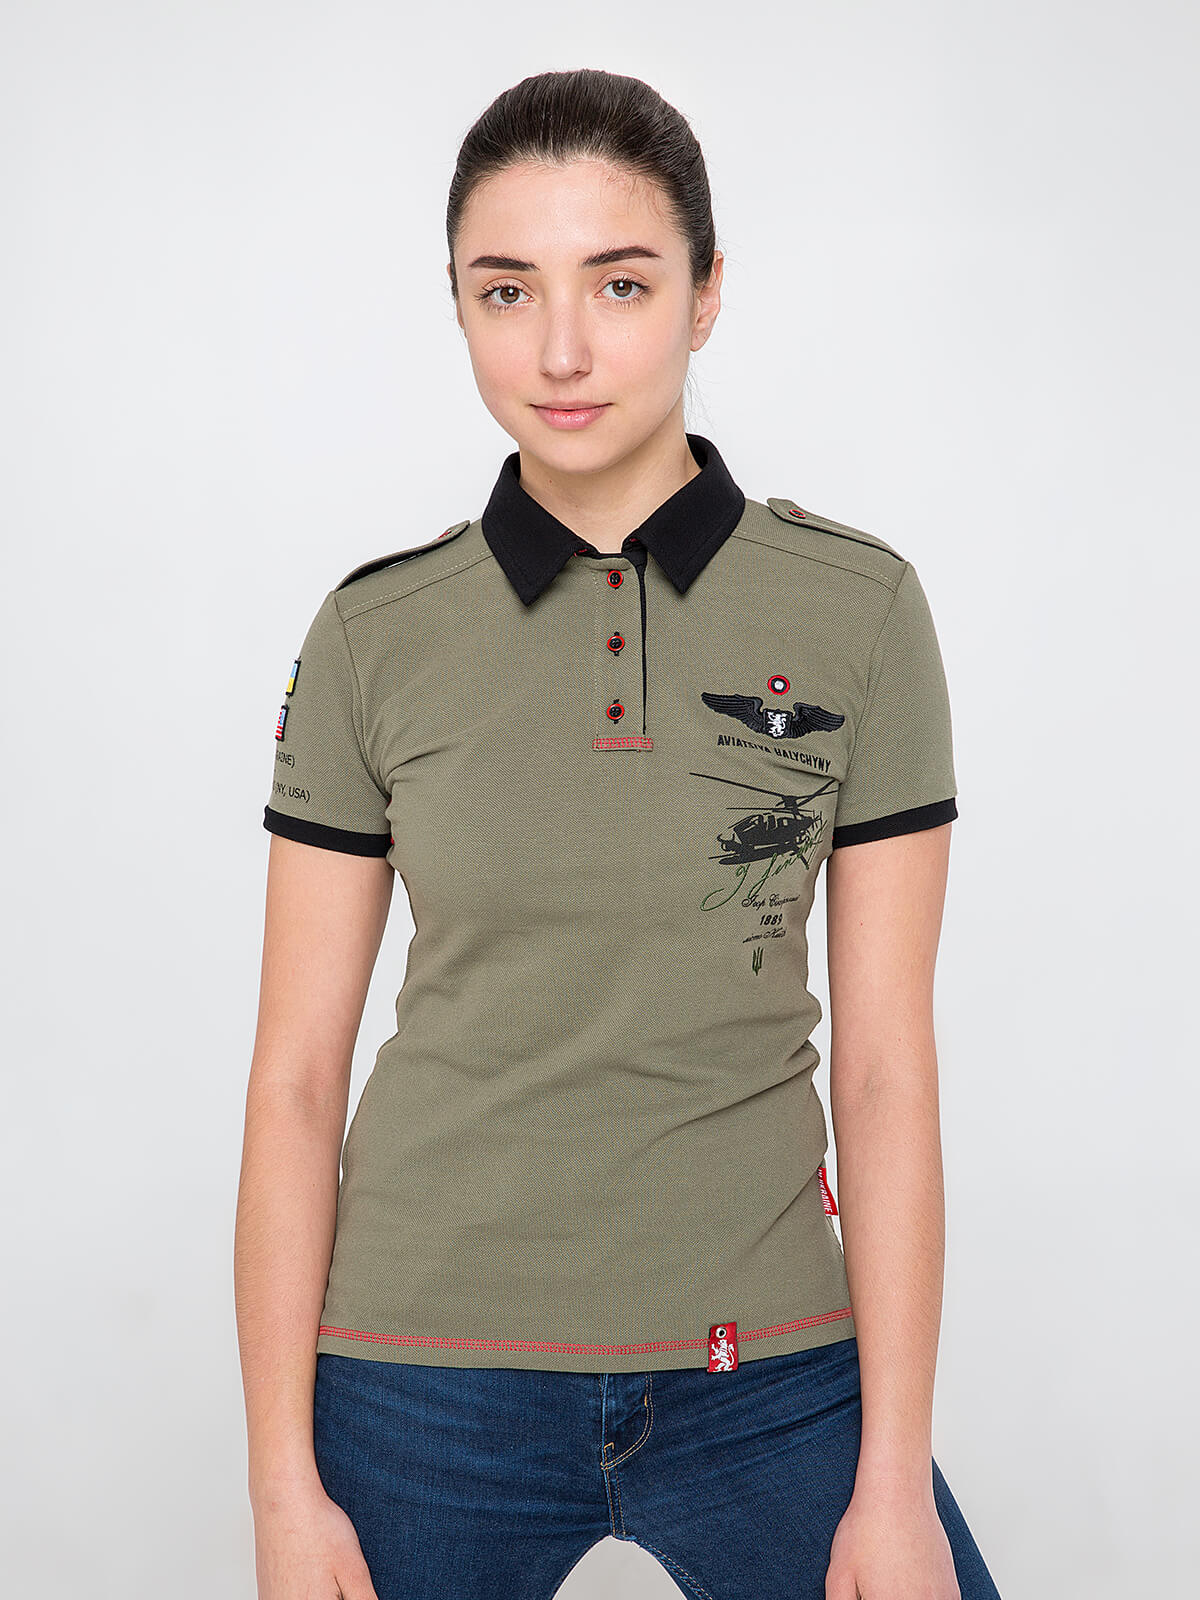 Women's Polo Shirt Sikorsky. Color khaki. Pique fabric: 100% cotton.